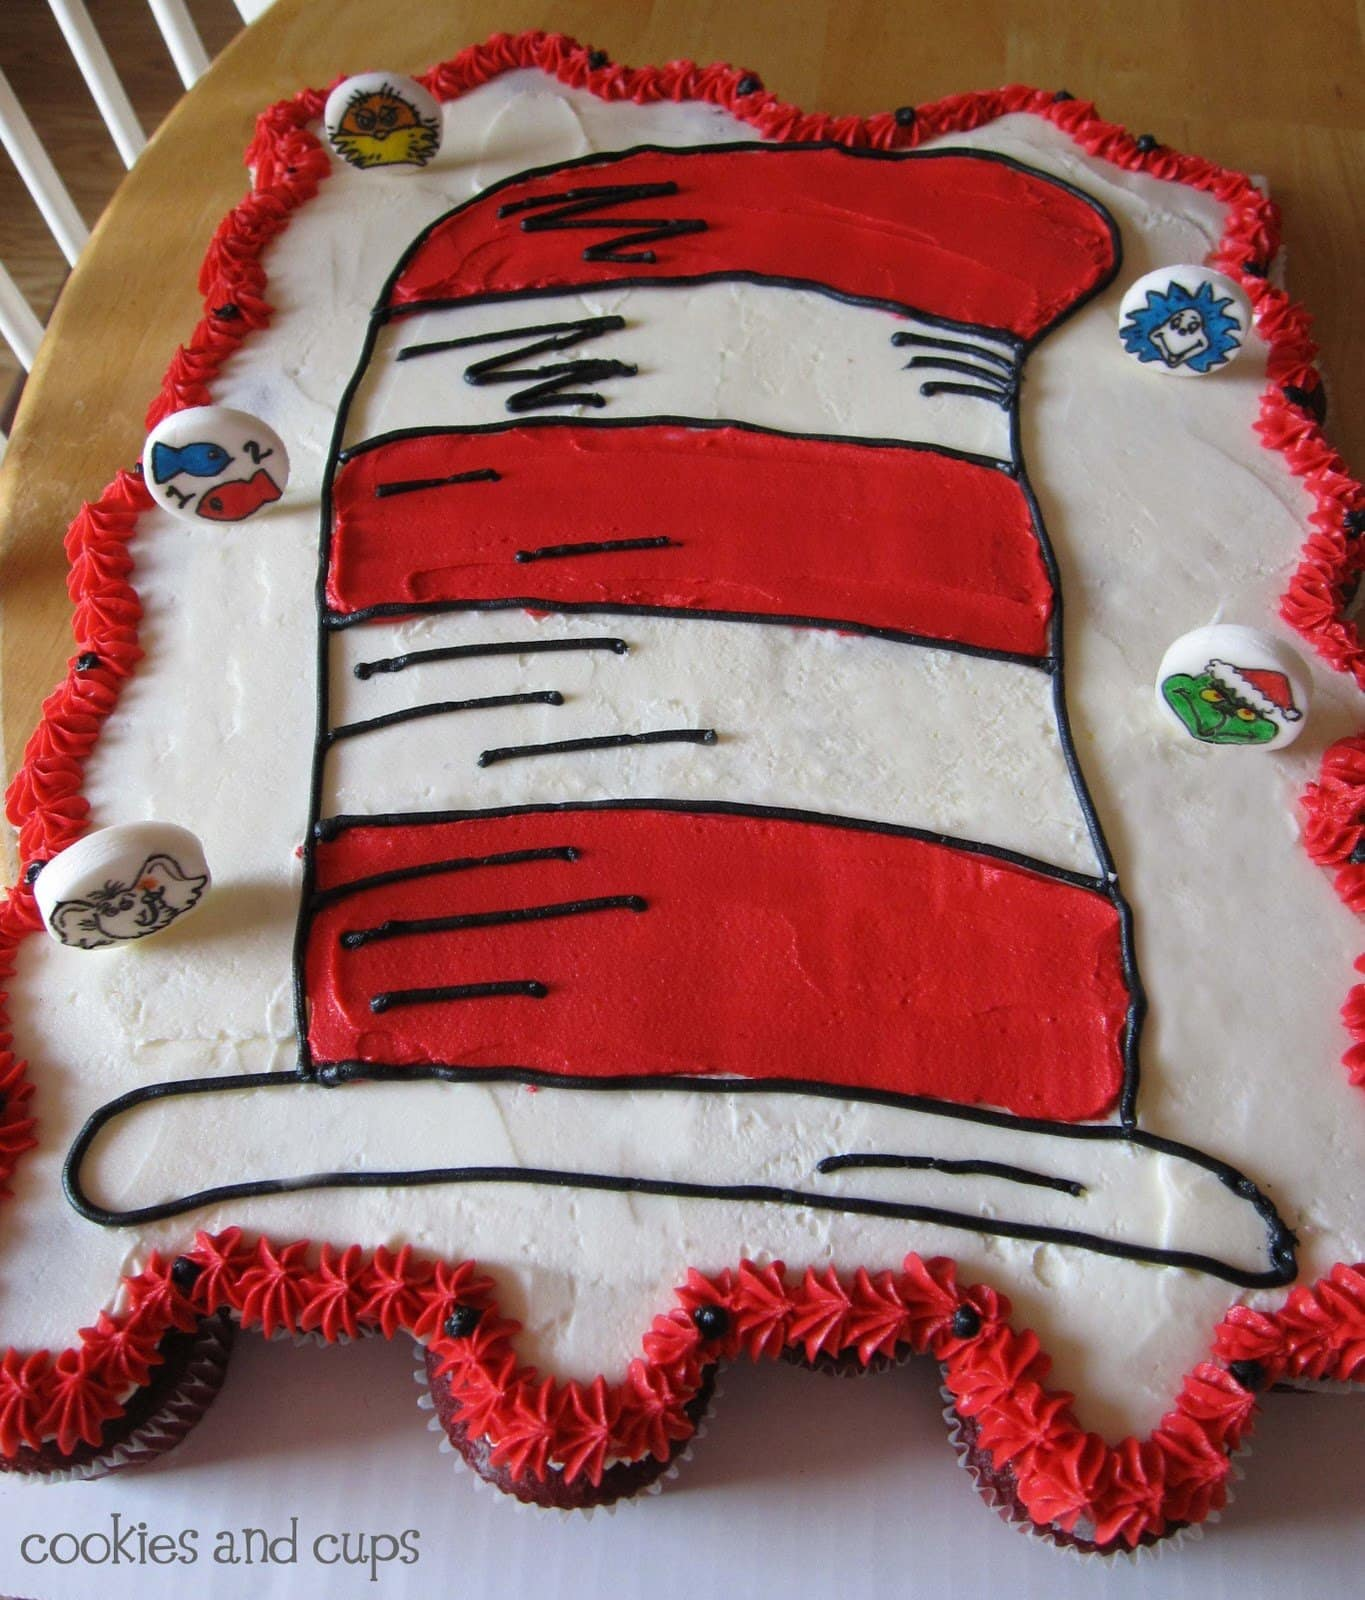 Top view of a red and white cake decorated as a Dr. Seuss hat